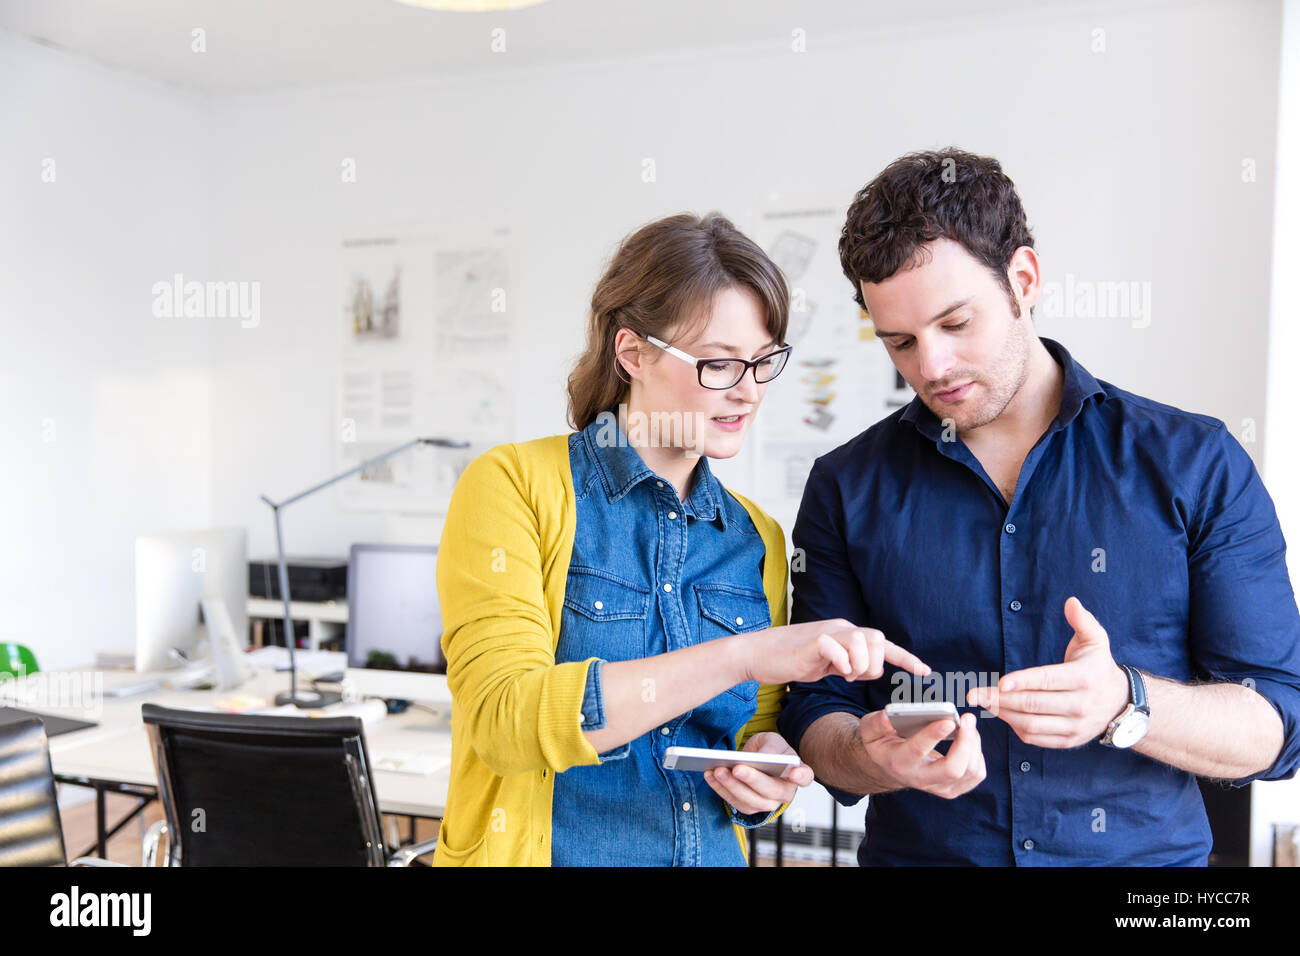 Colleagues in office looking down discussing smartphones - Stock Image